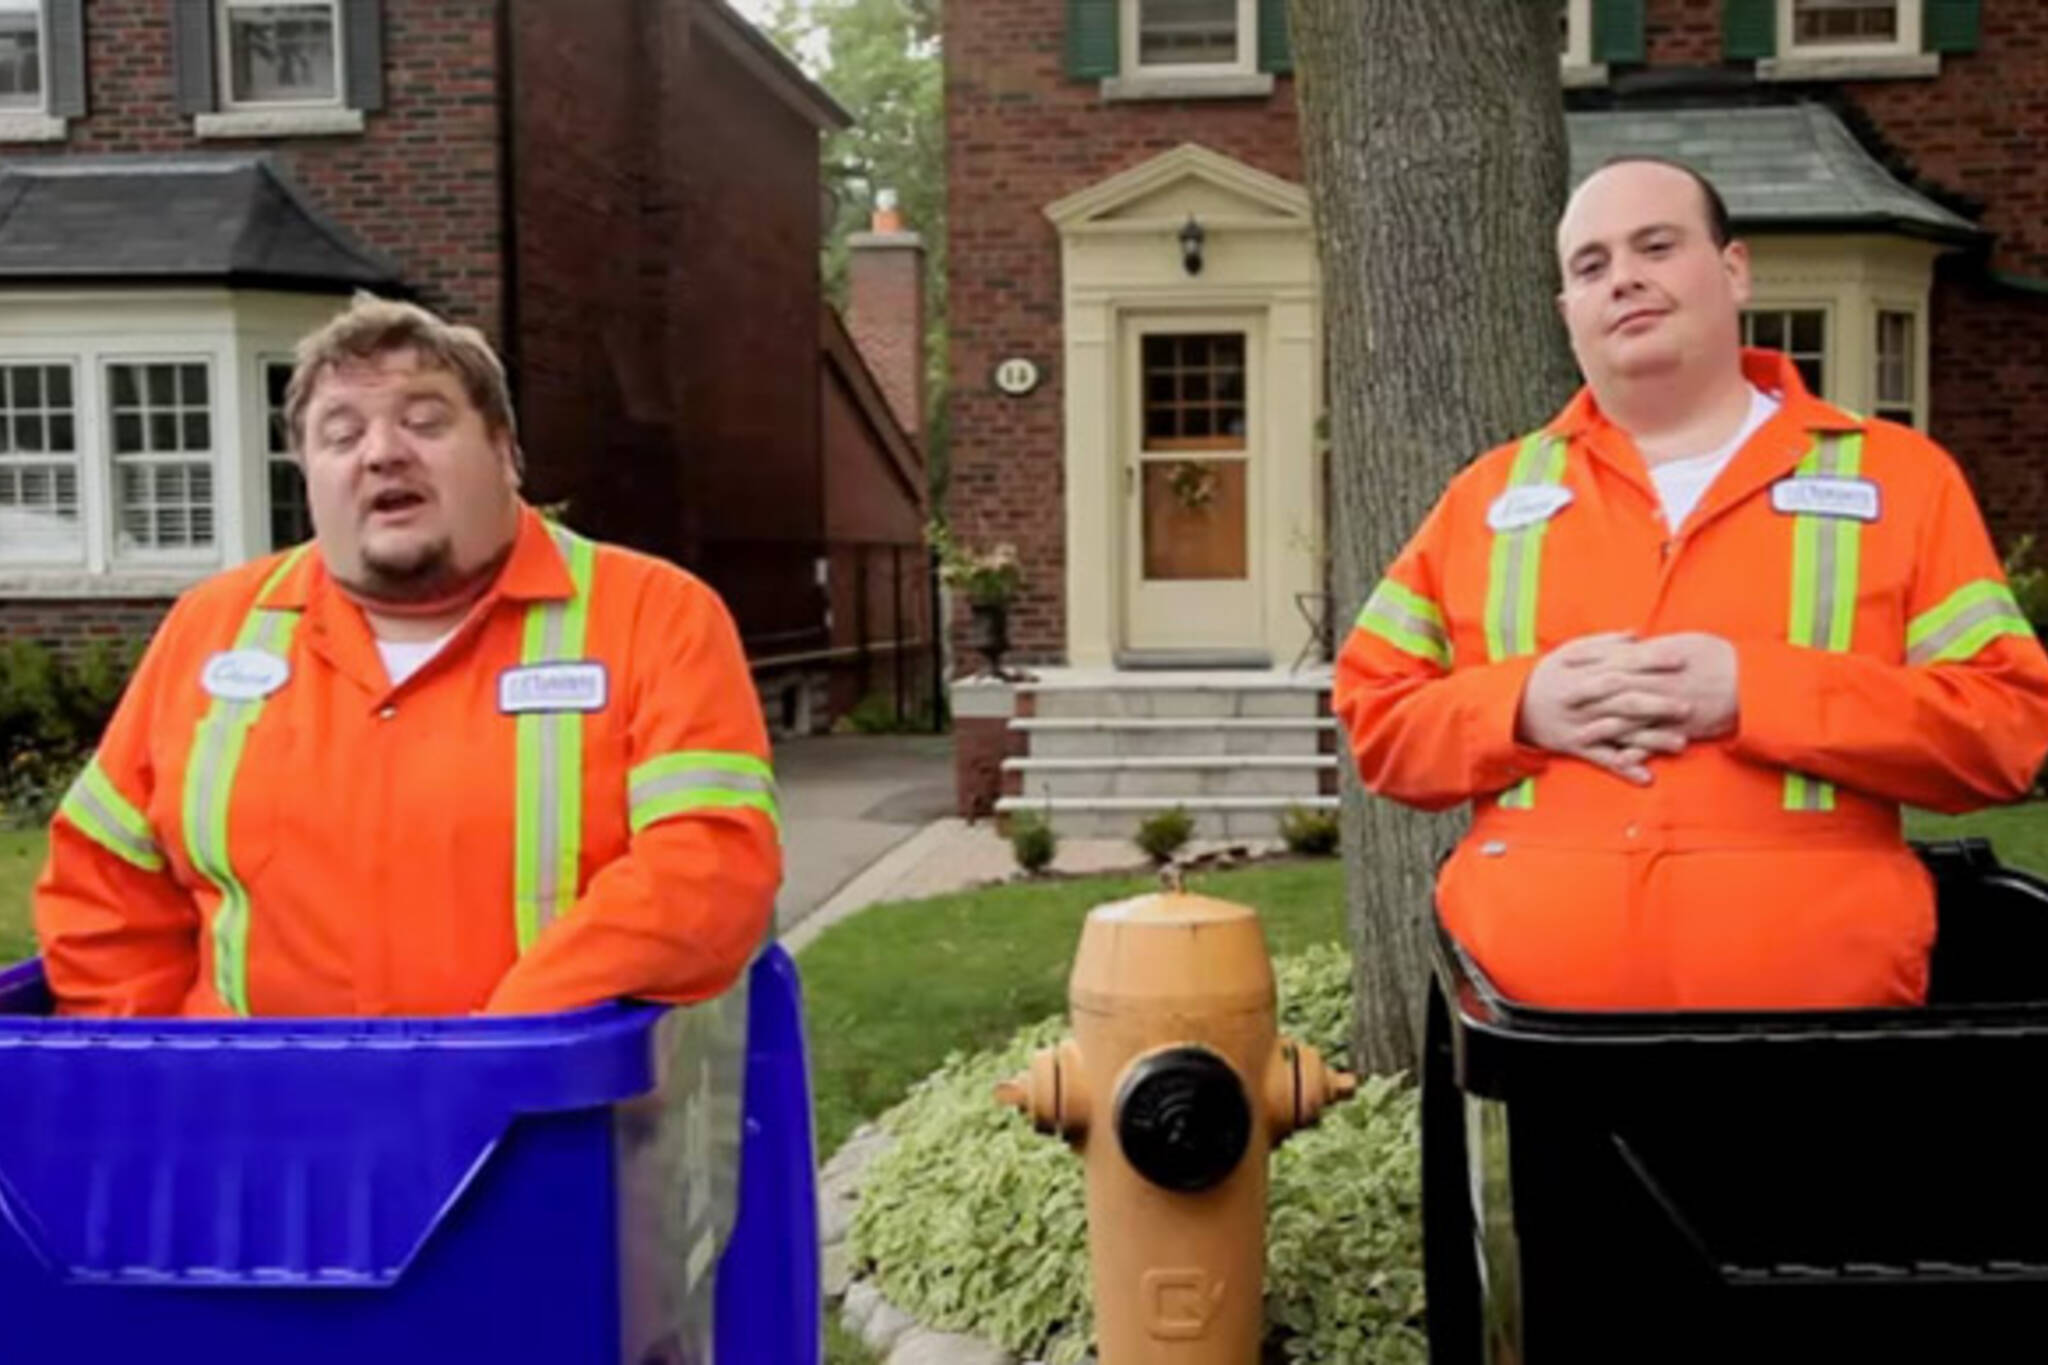 Chuck and Vince Recyling YouTube